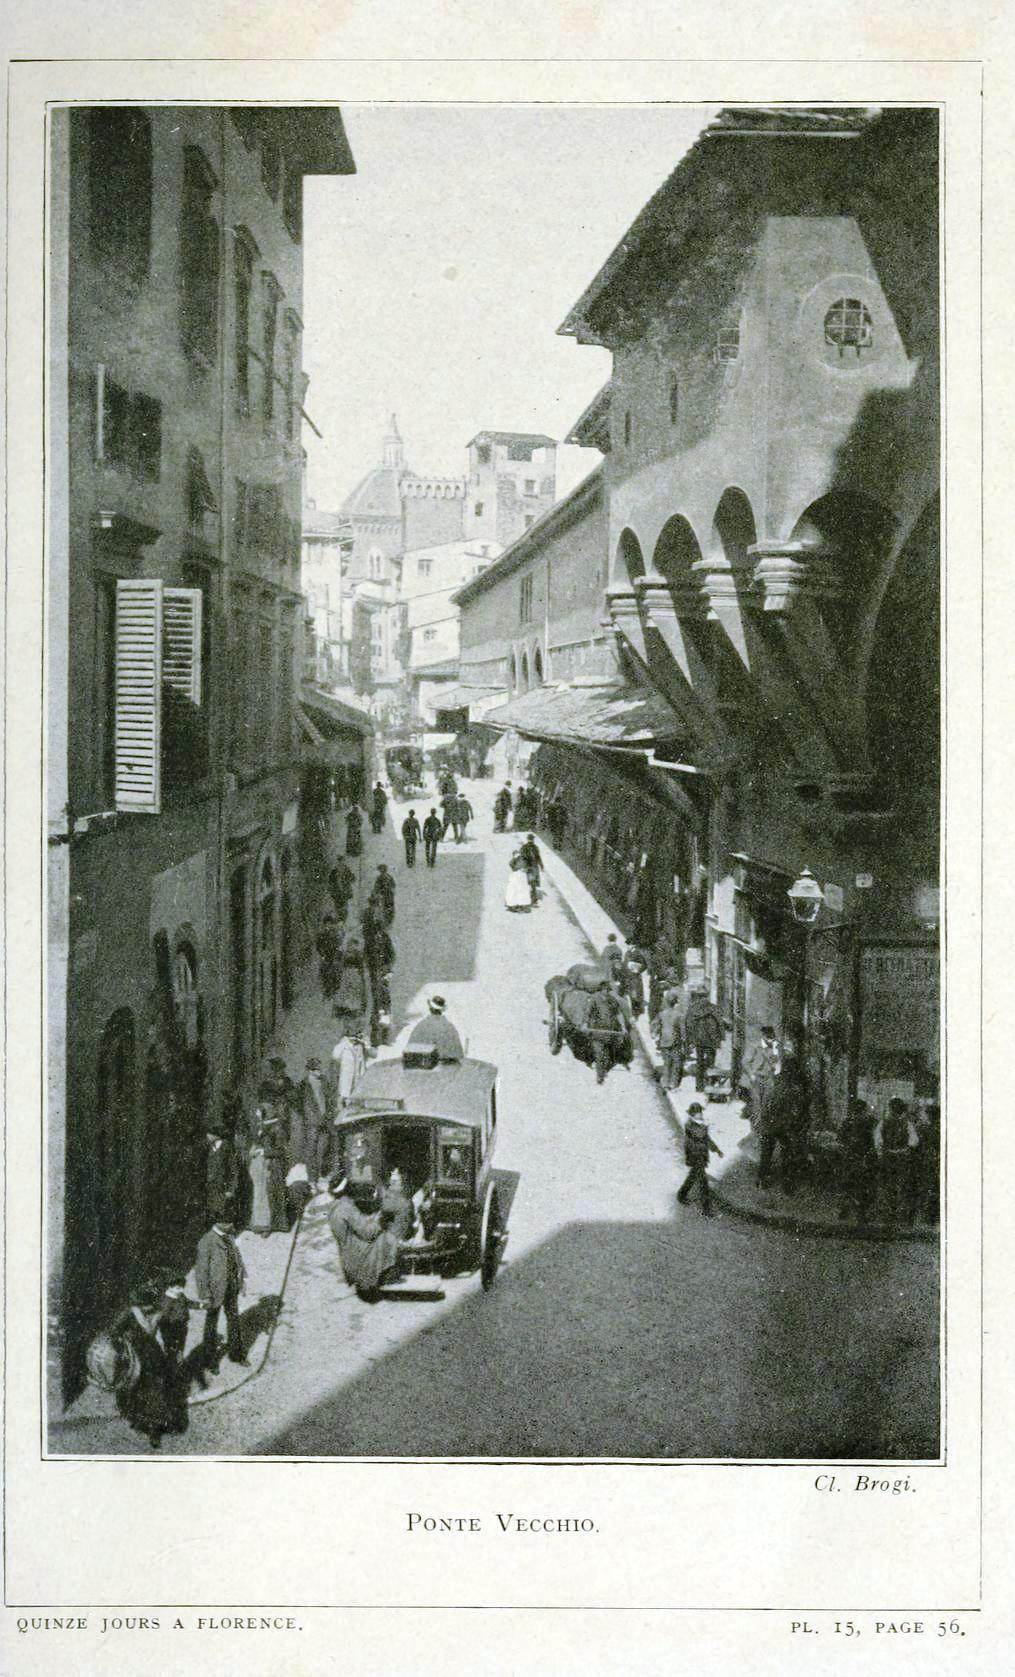 Quinze jours a Florence; ouvrage illustre de cent huit gravures et de 16 plans (1913). Scan of 2 d images in the public domain believed be free to use without restriction in the U.S.